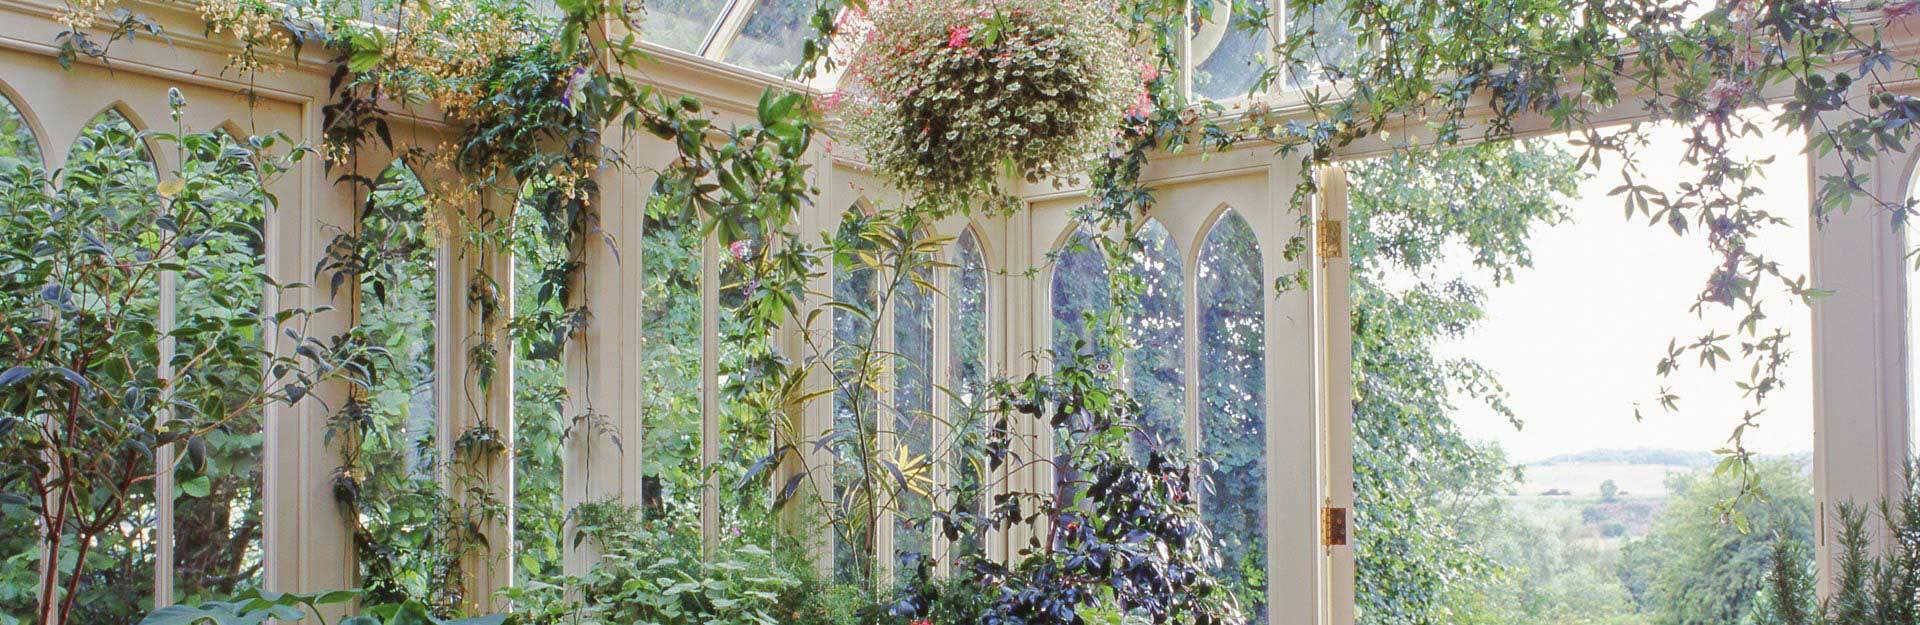 Conservatory built purposely for plants